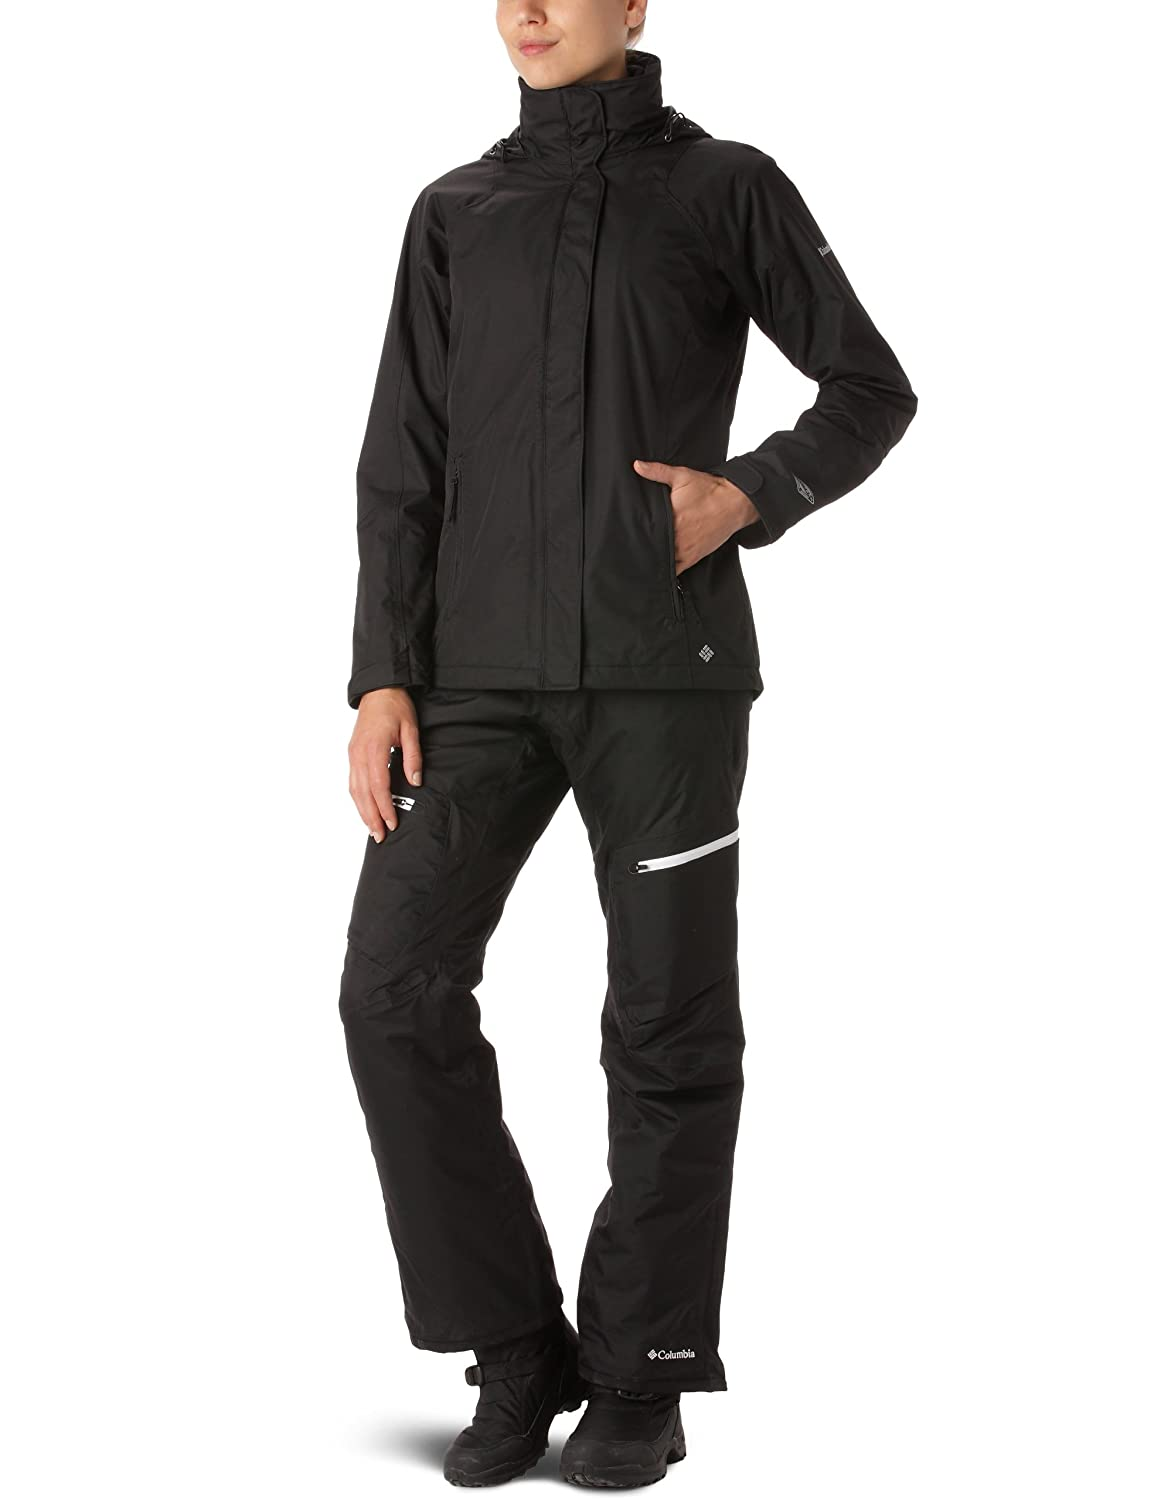 Columbia Damen Doppeljacke Pioneering Peak Interchange kaufen